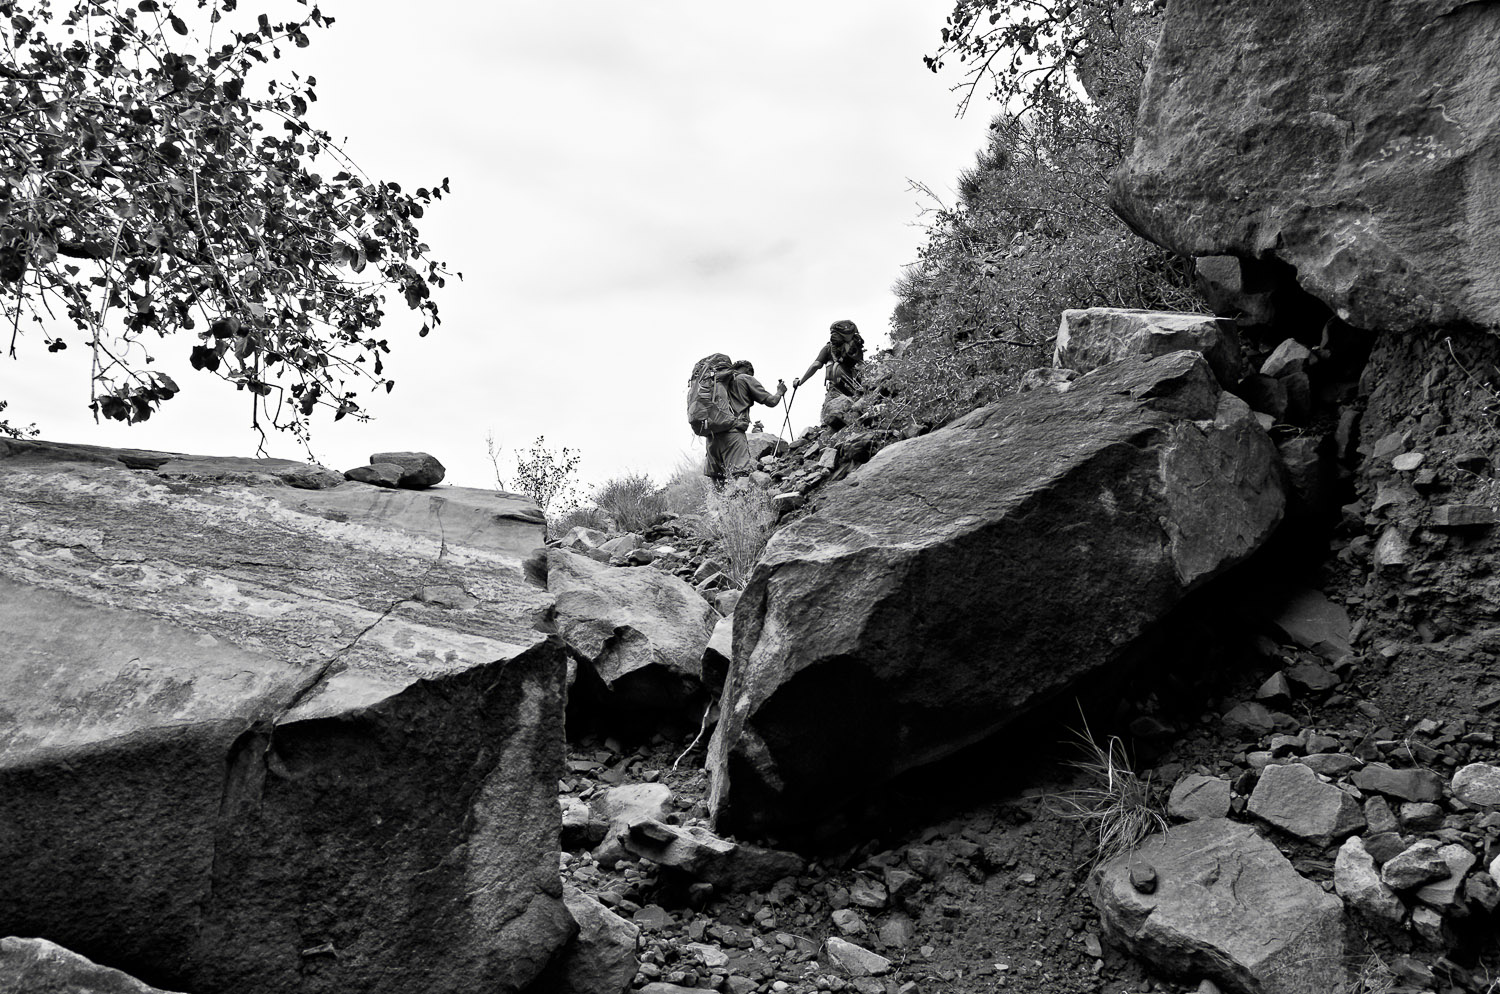 Boulders and Hikers, Hermit Trail | Mark Lindsay